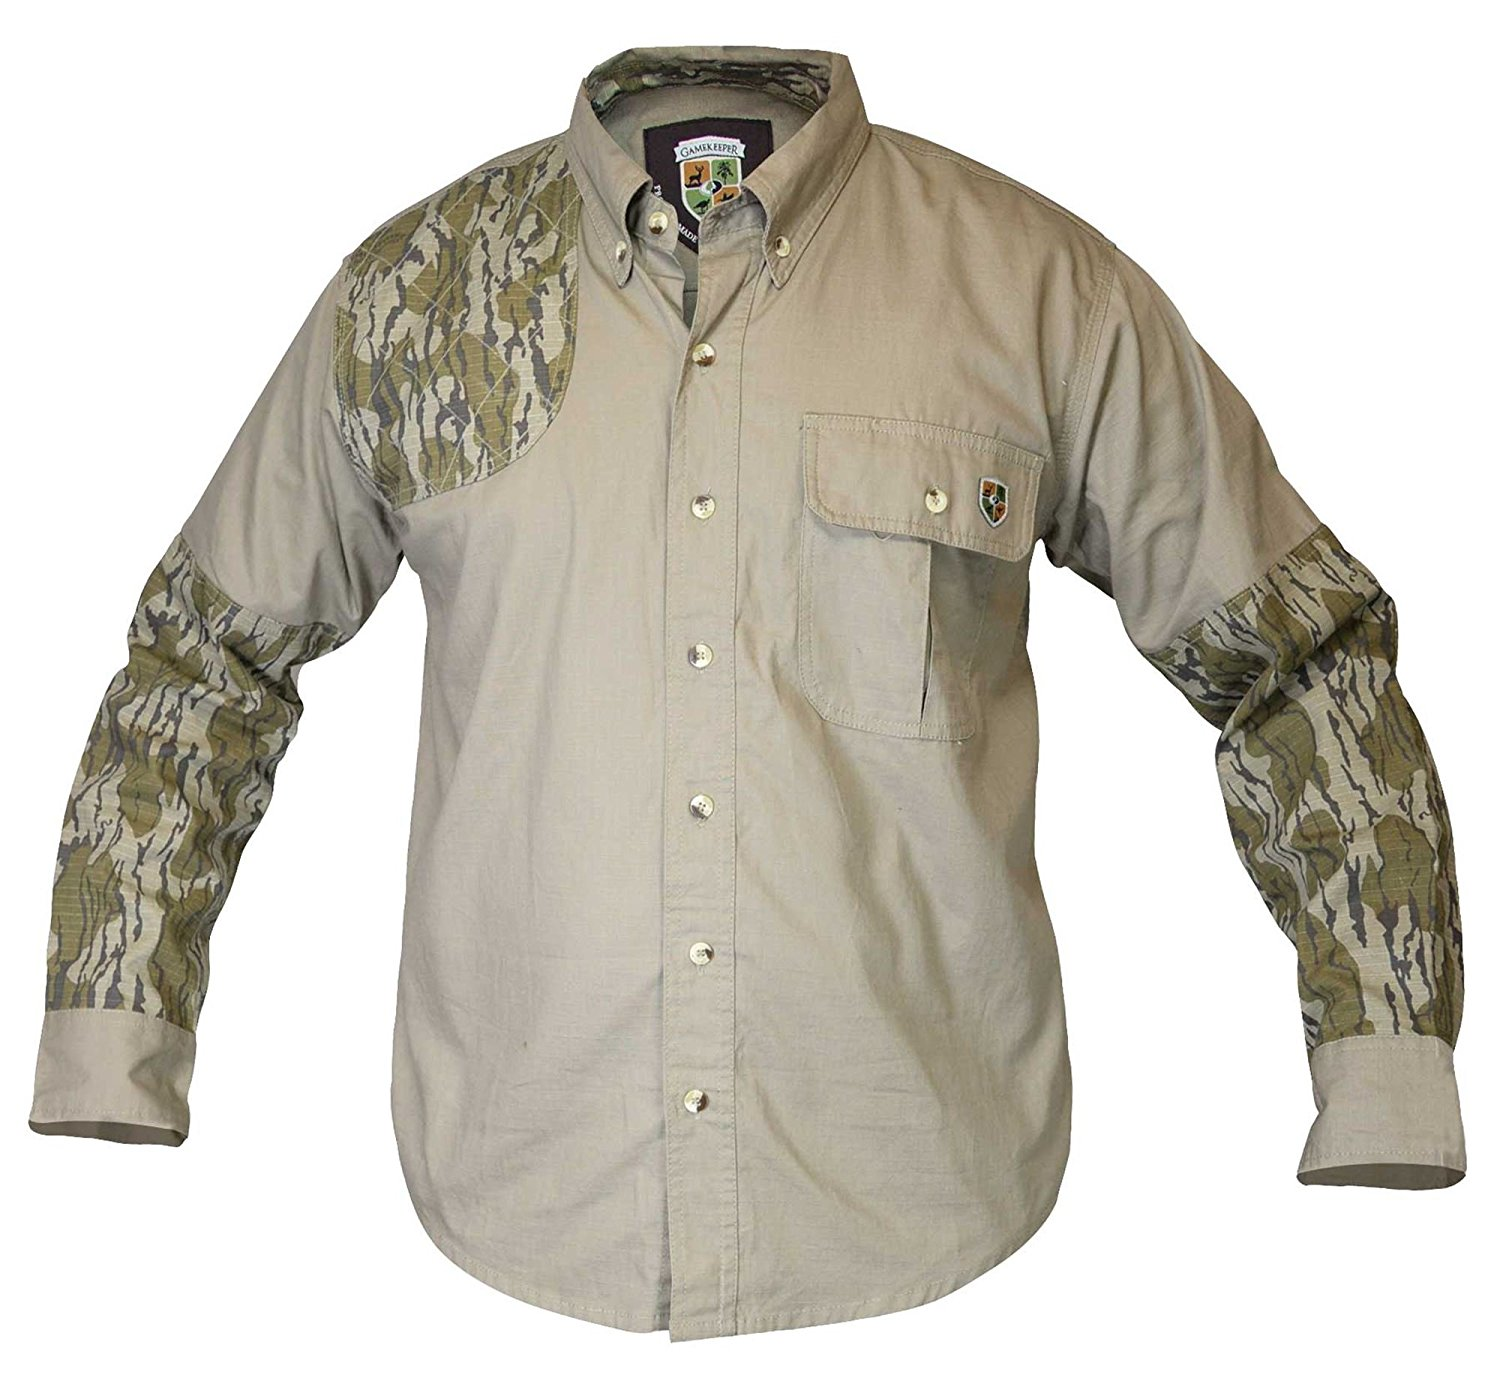 GameKeeper by SportChief Dirt Shirt Long Sleeve BOTTOMLAND ACCENT